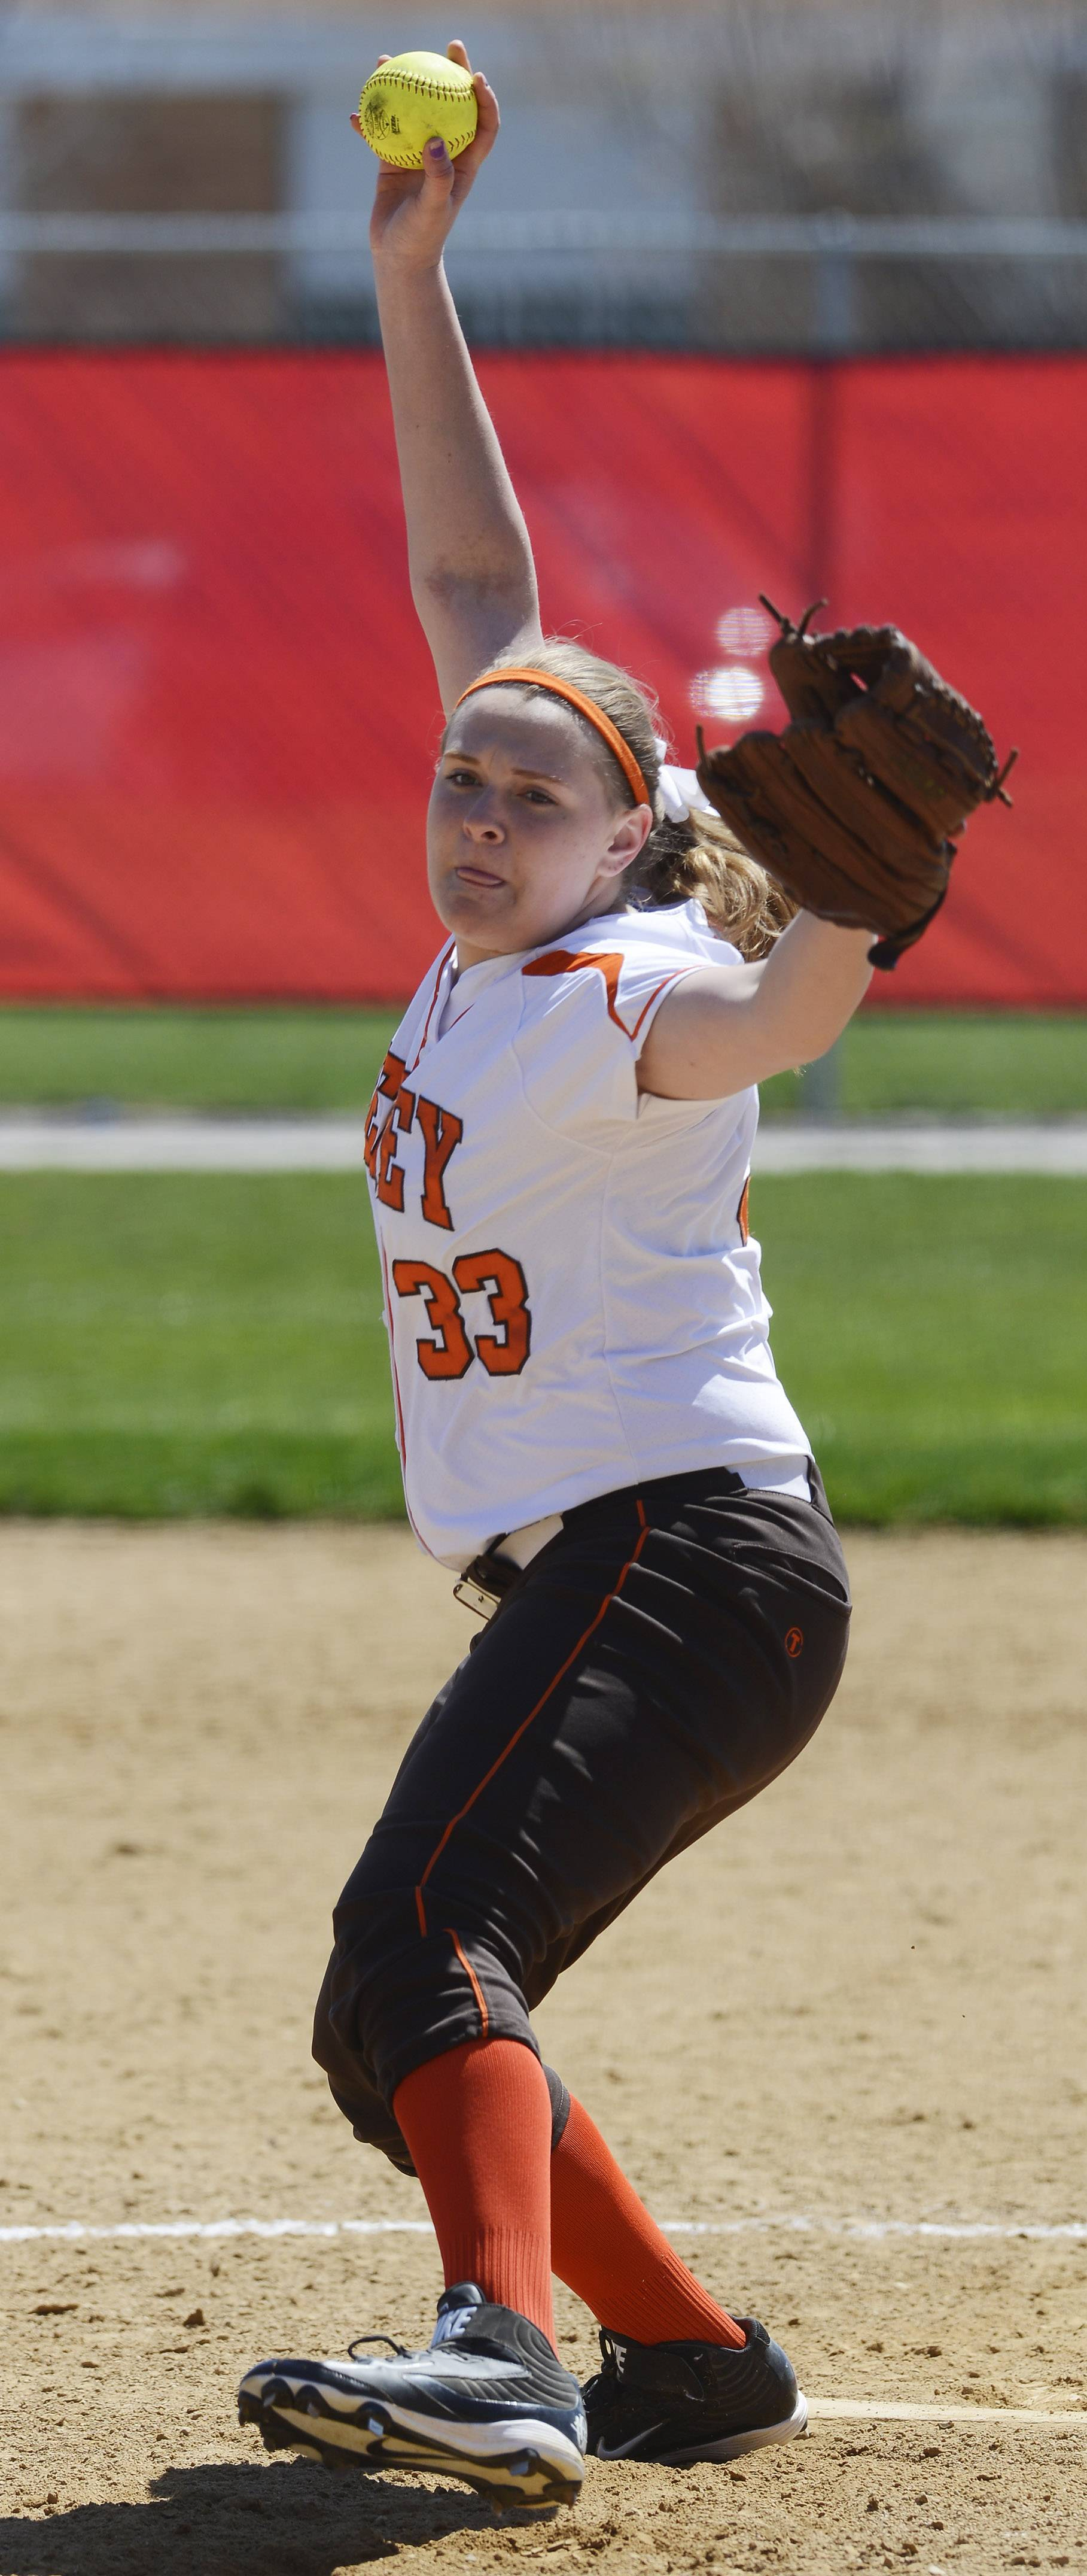 Hersey's Kim Labahn delivers a pitch during Saturday's game at Mundelein.